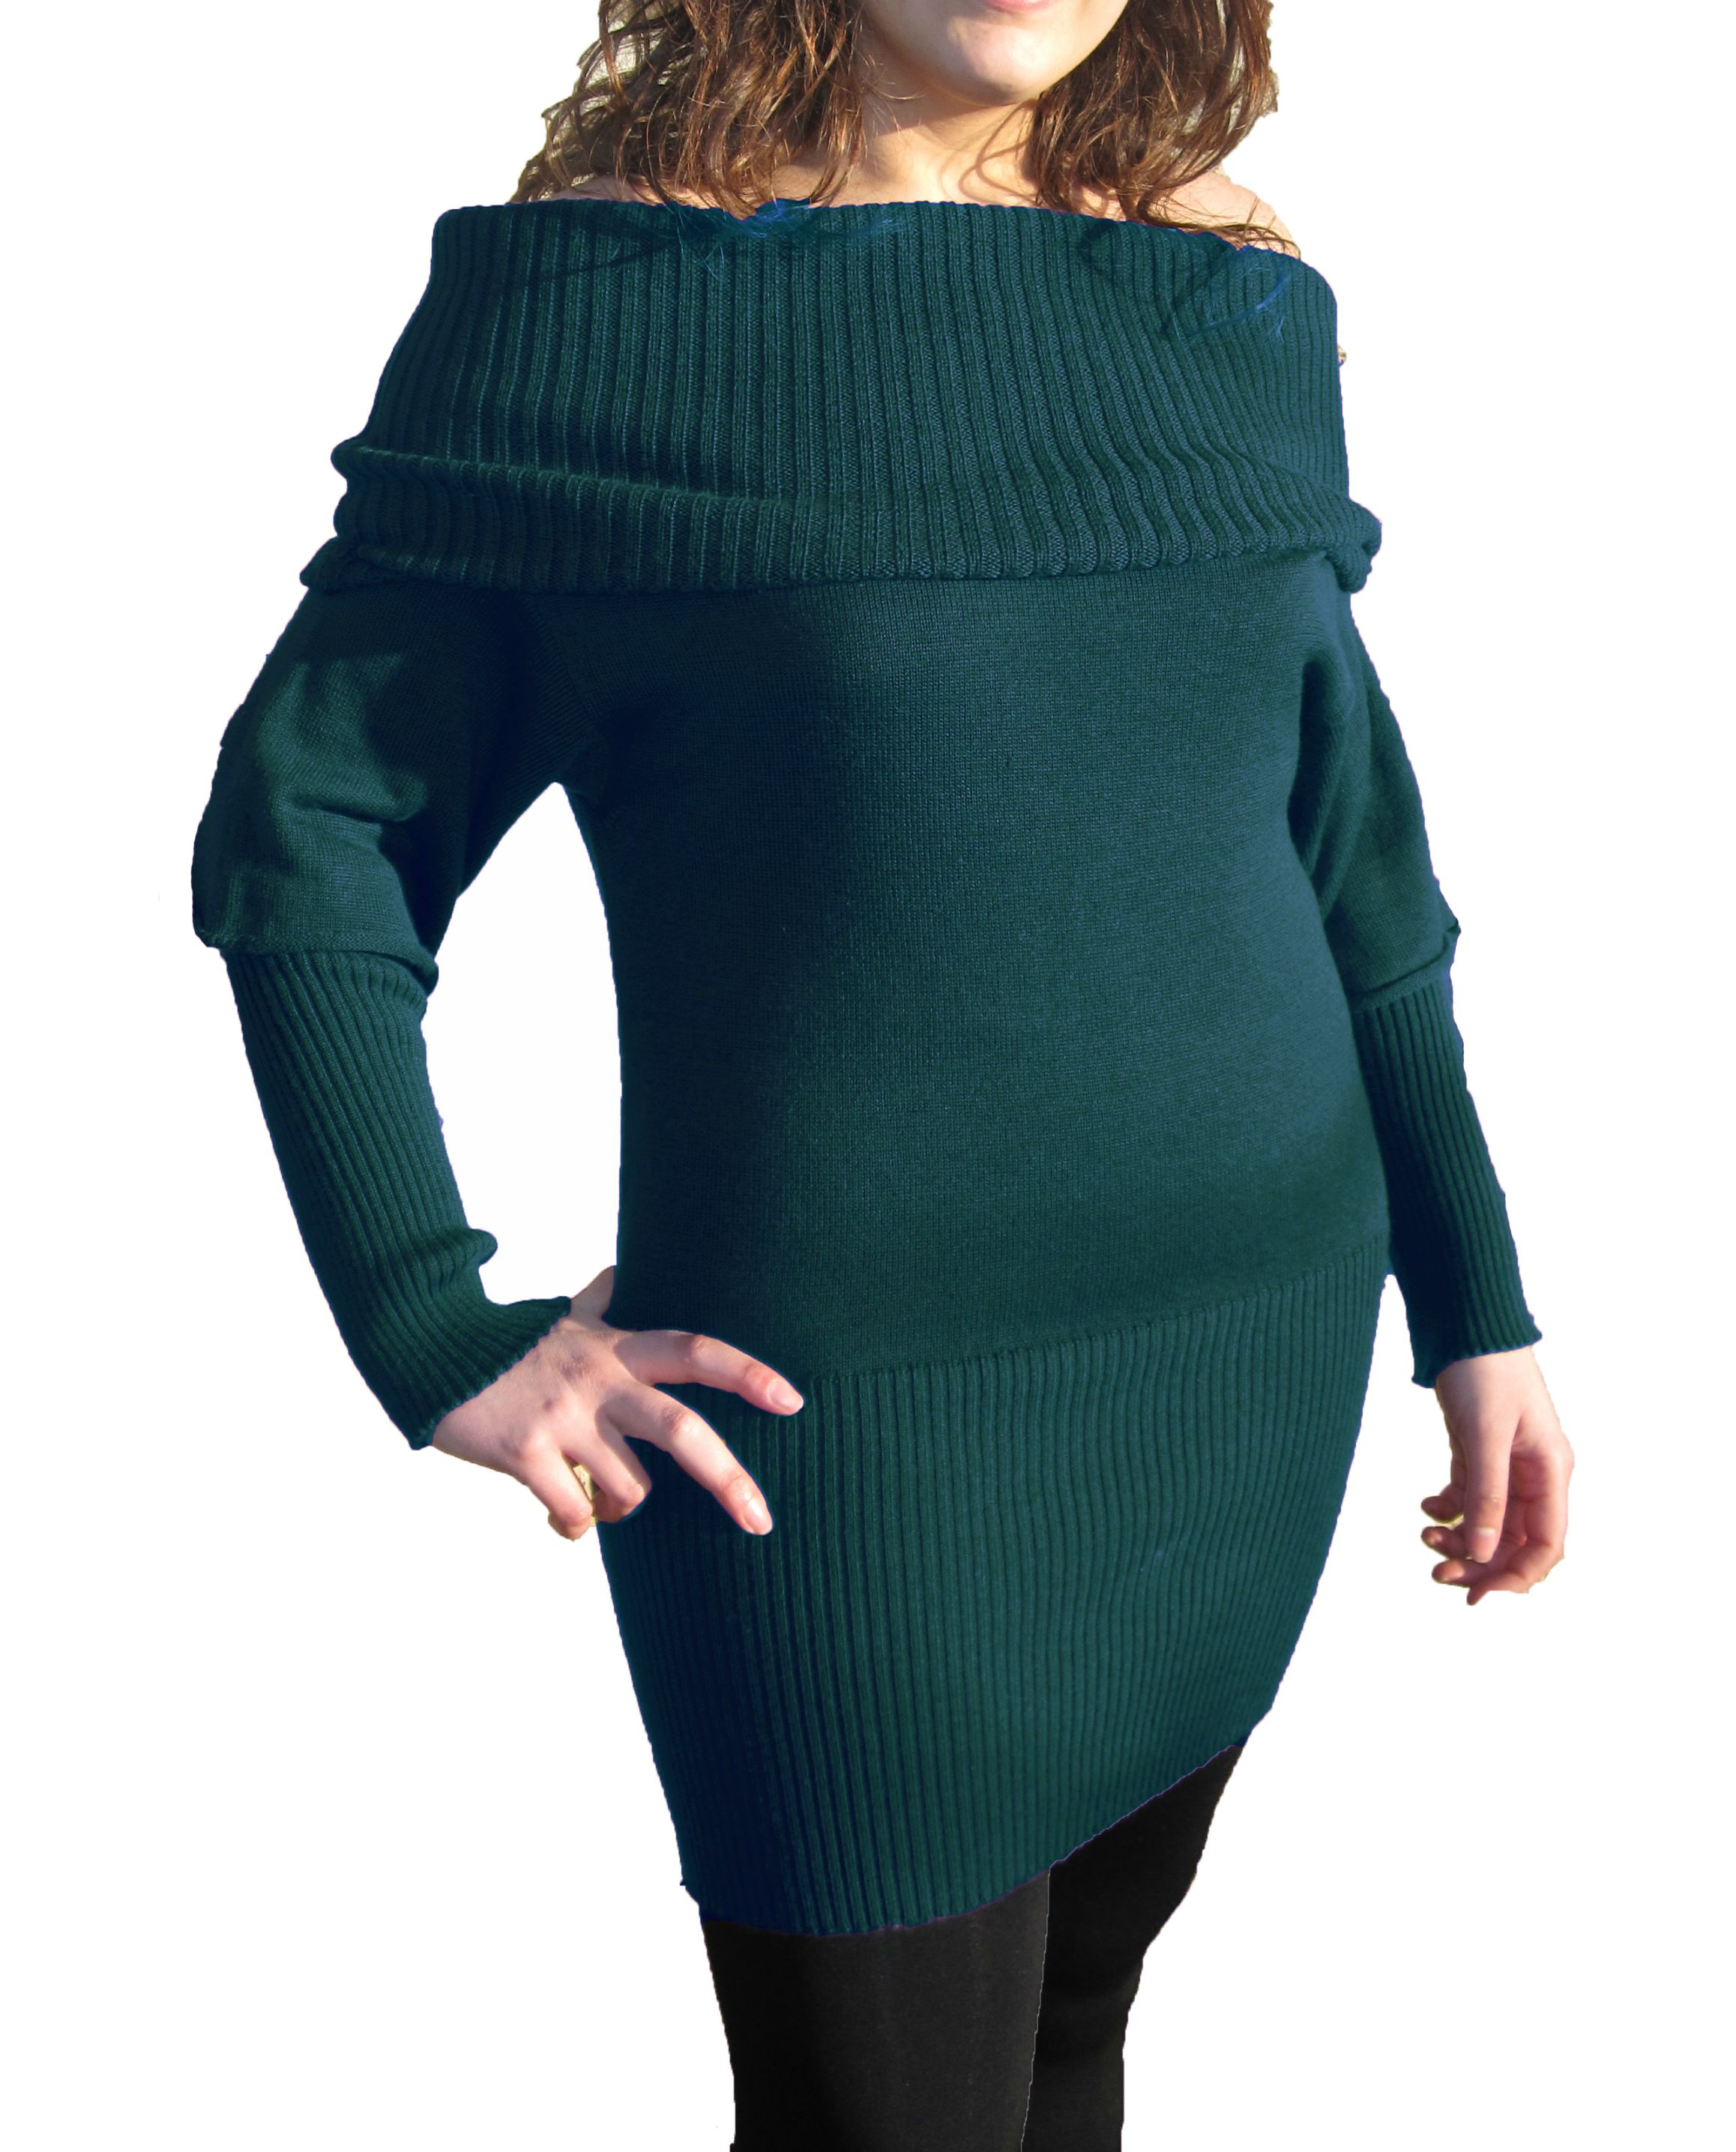 Knitwear Short Dress with Boat Neck - Sea Green